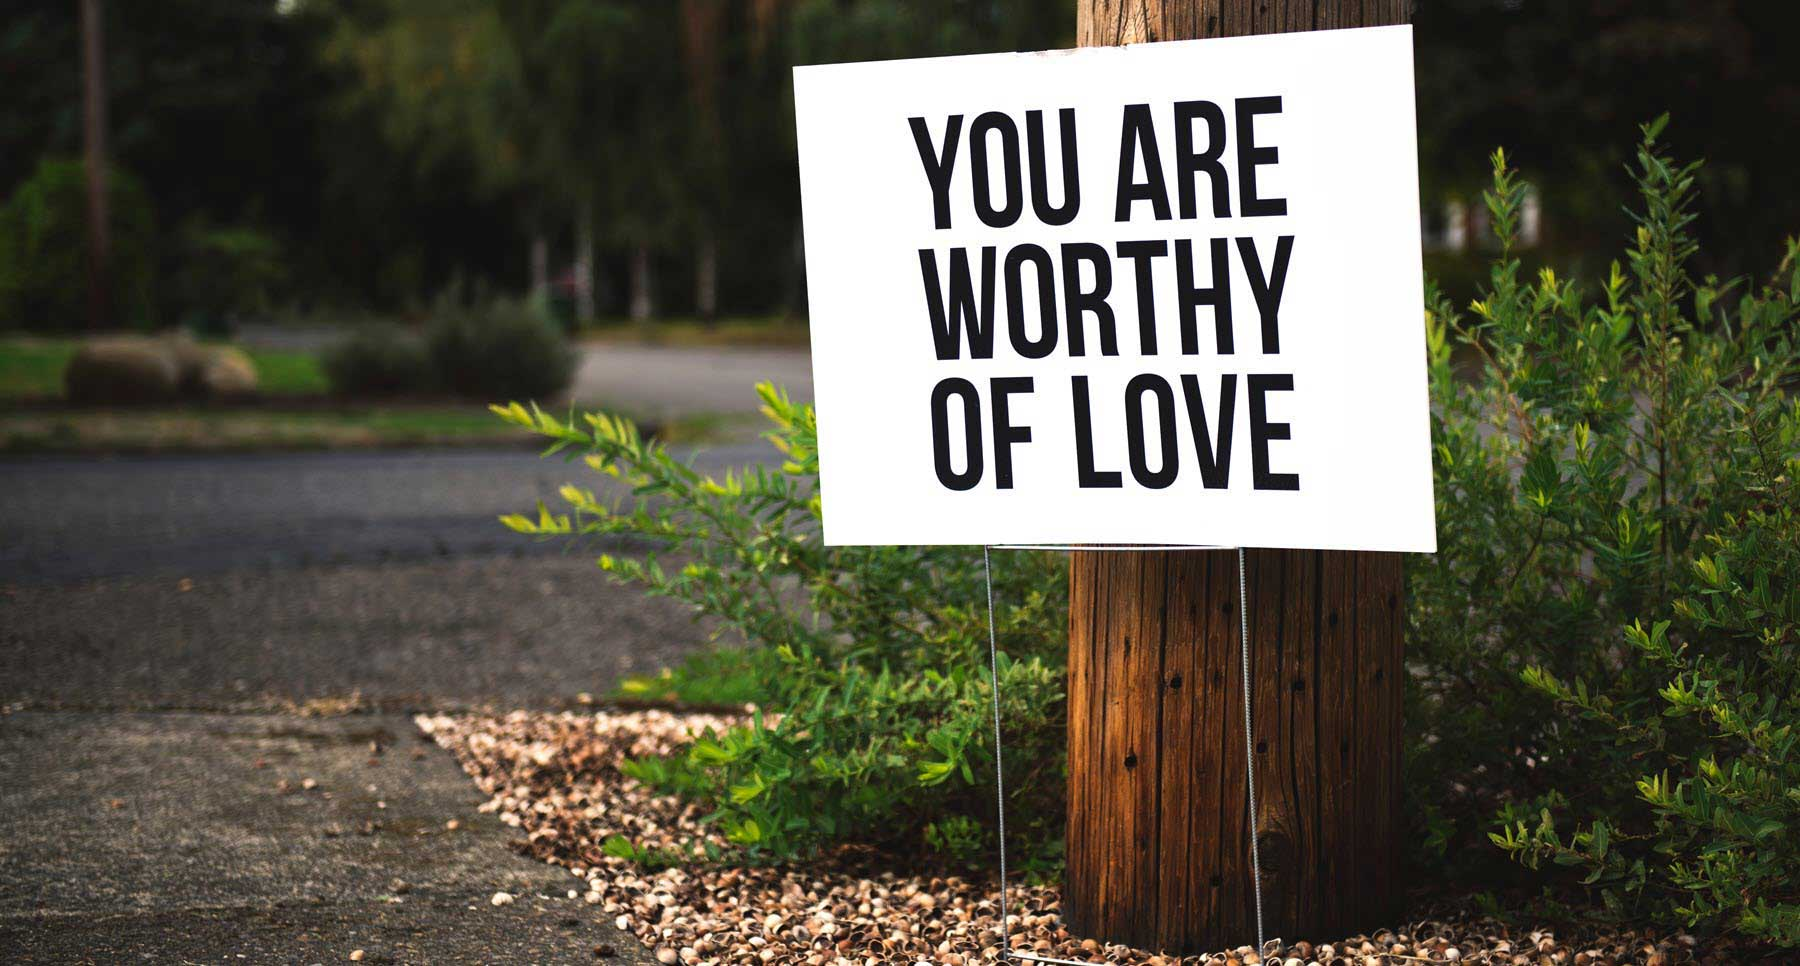 10-Ways-to-Increase-Your-Self-Esteem-checklist-from-TheHopeLine